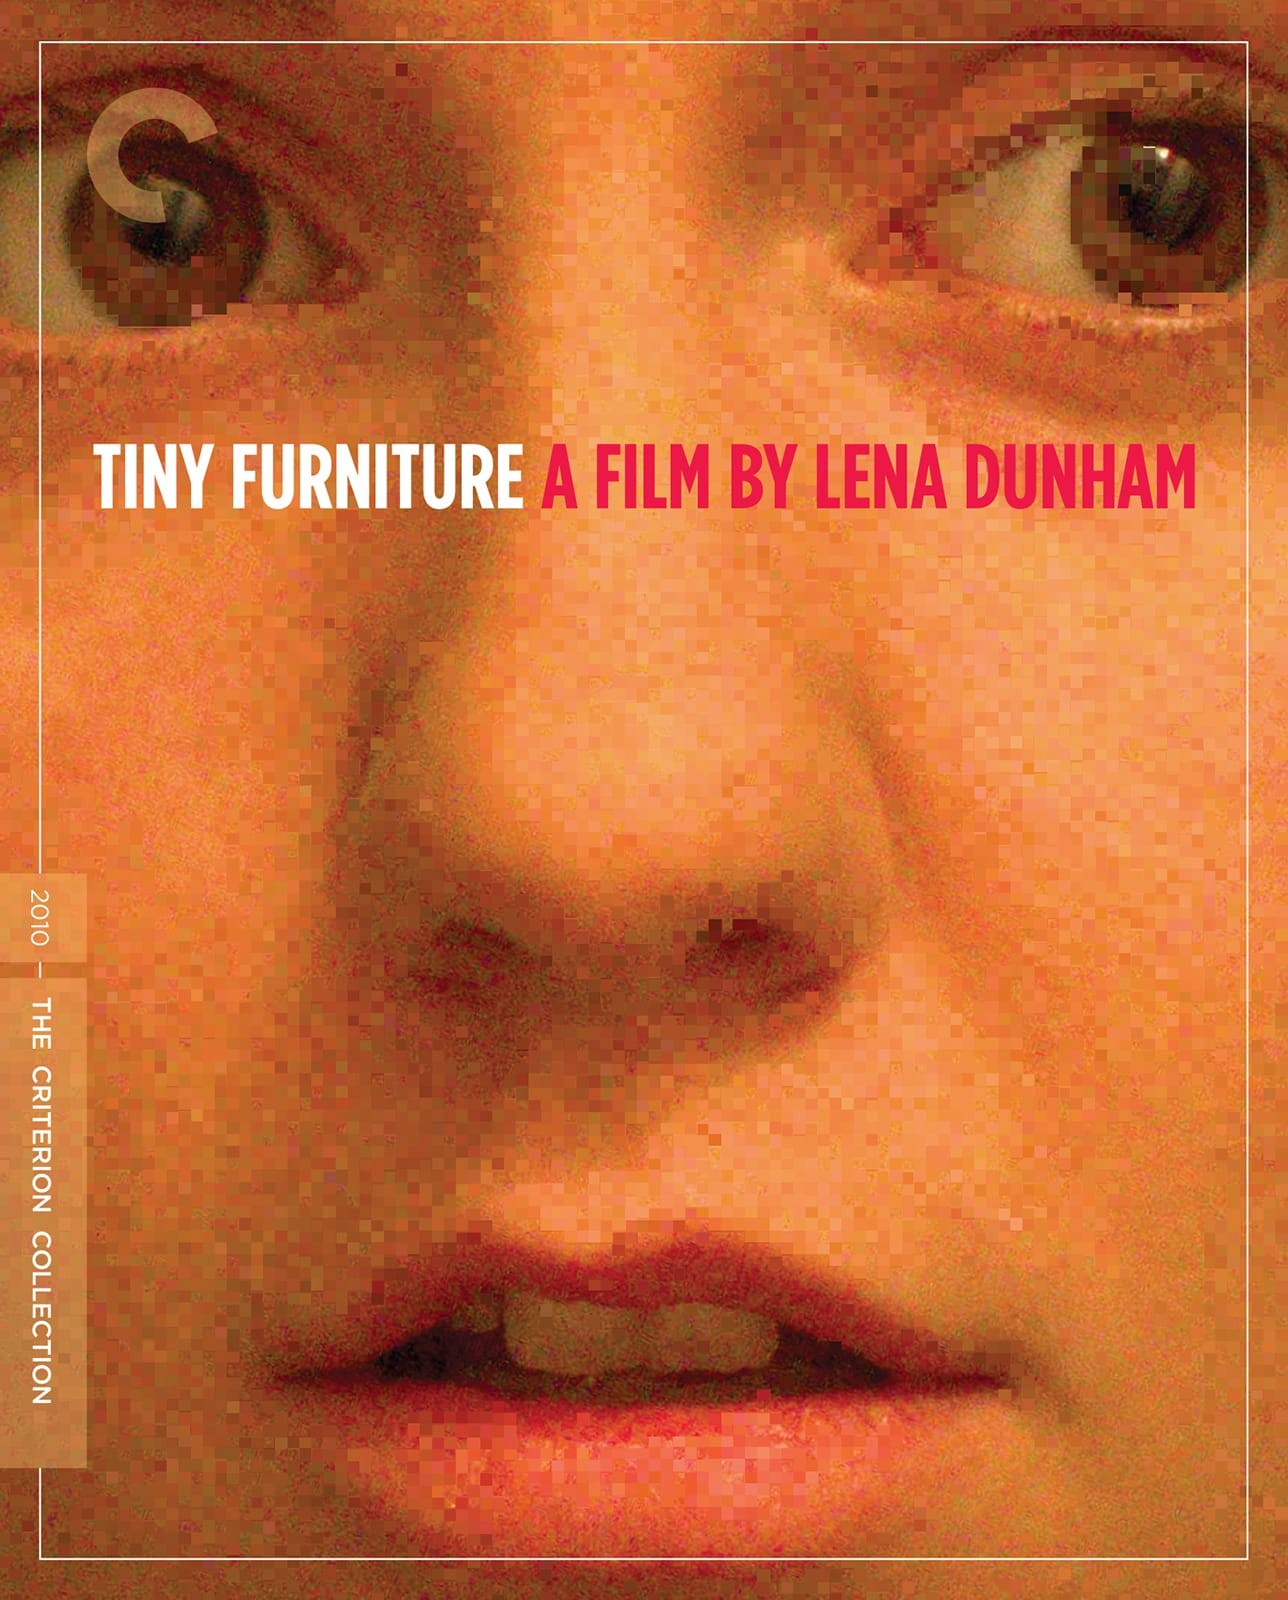 Tiny Furniture 2010 The Criterion Collection